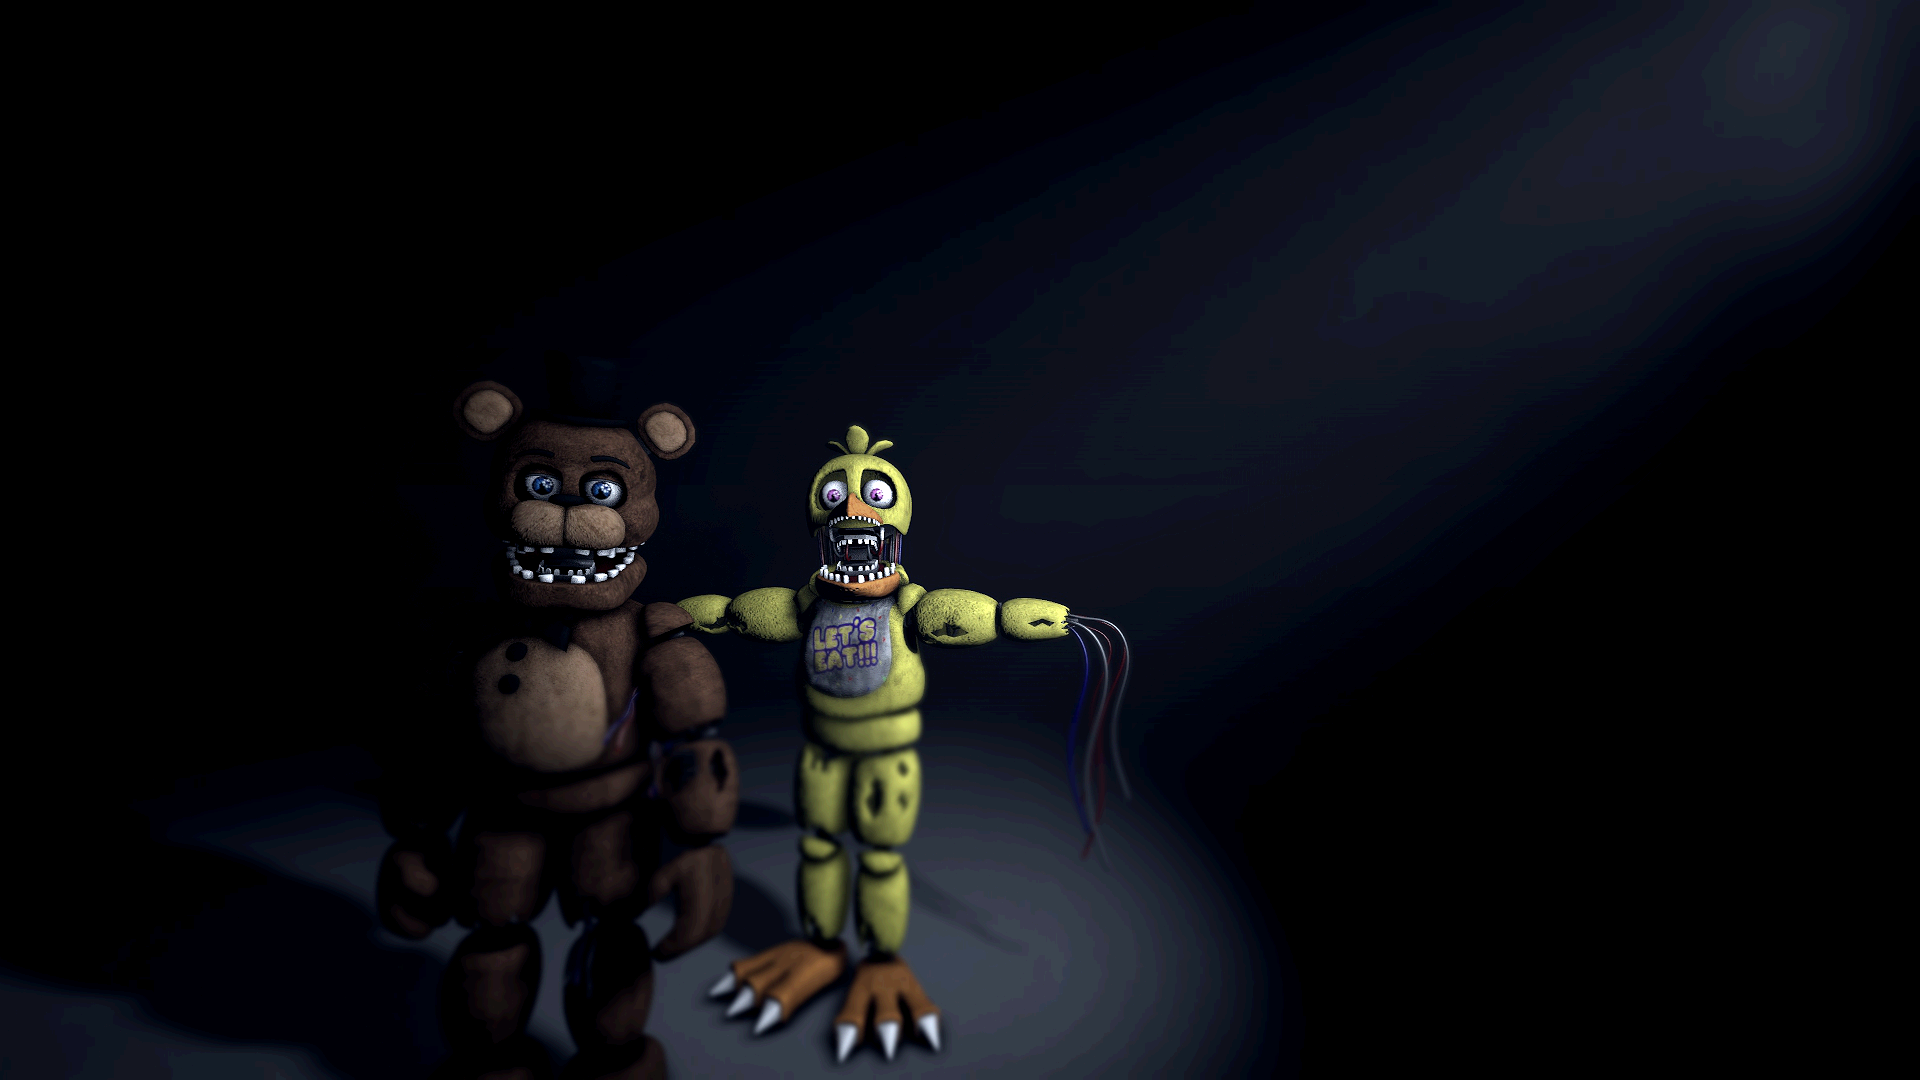 Withered Freddy and Chica image - Imthepurpleguy - Indie DB